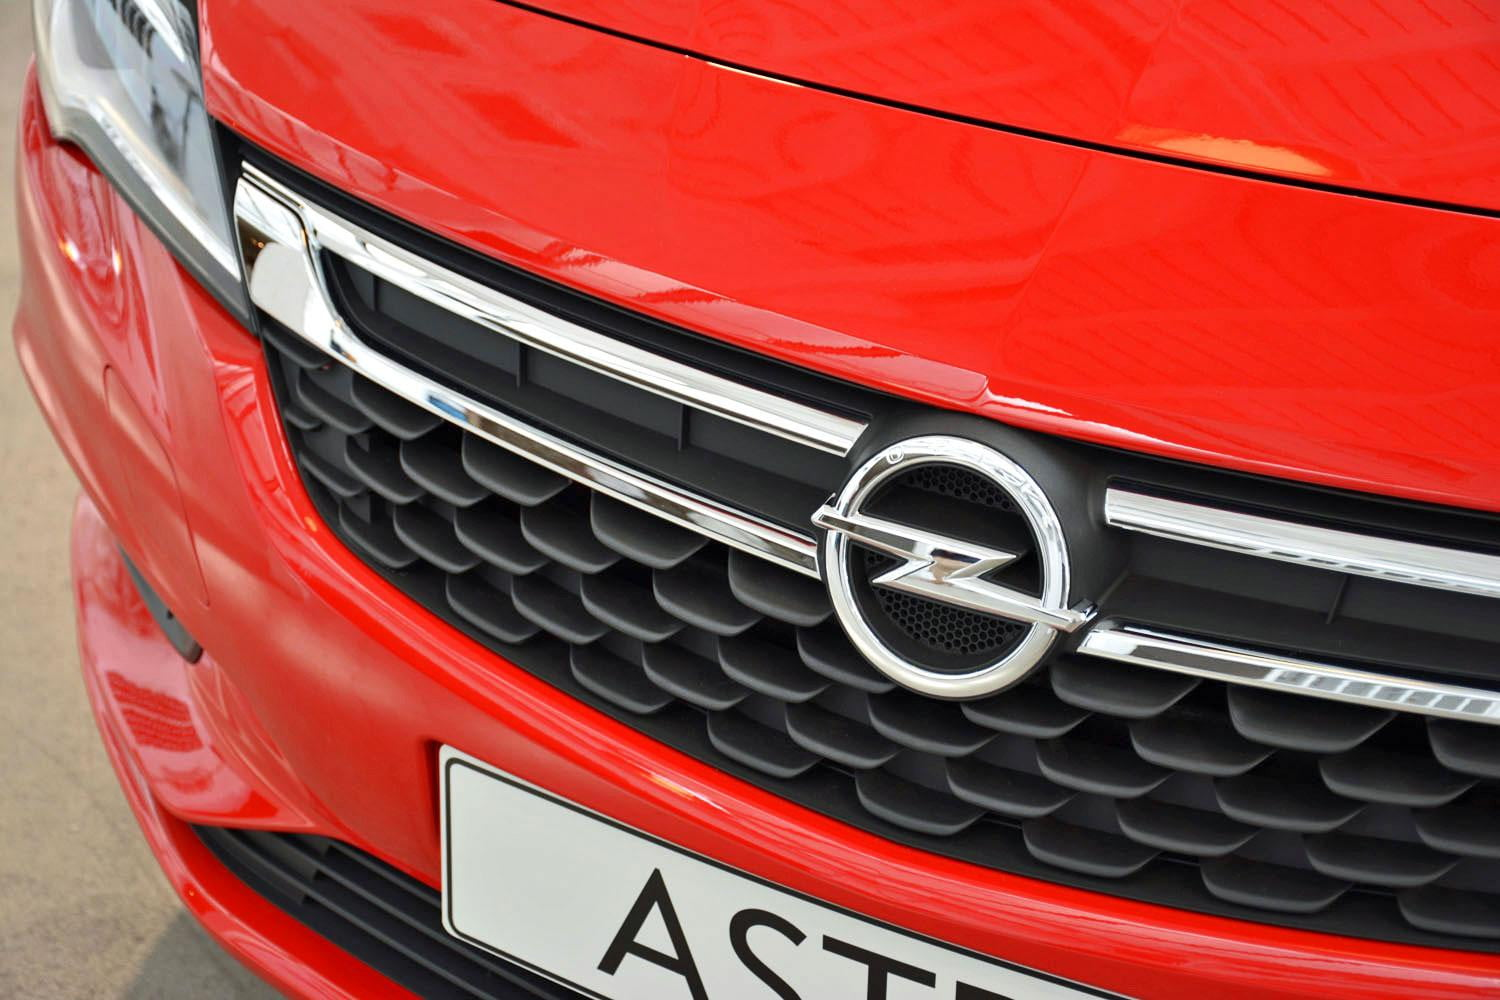 2016 Opel Astra   Performance, Specs, Pictures, Hands-On   Digital